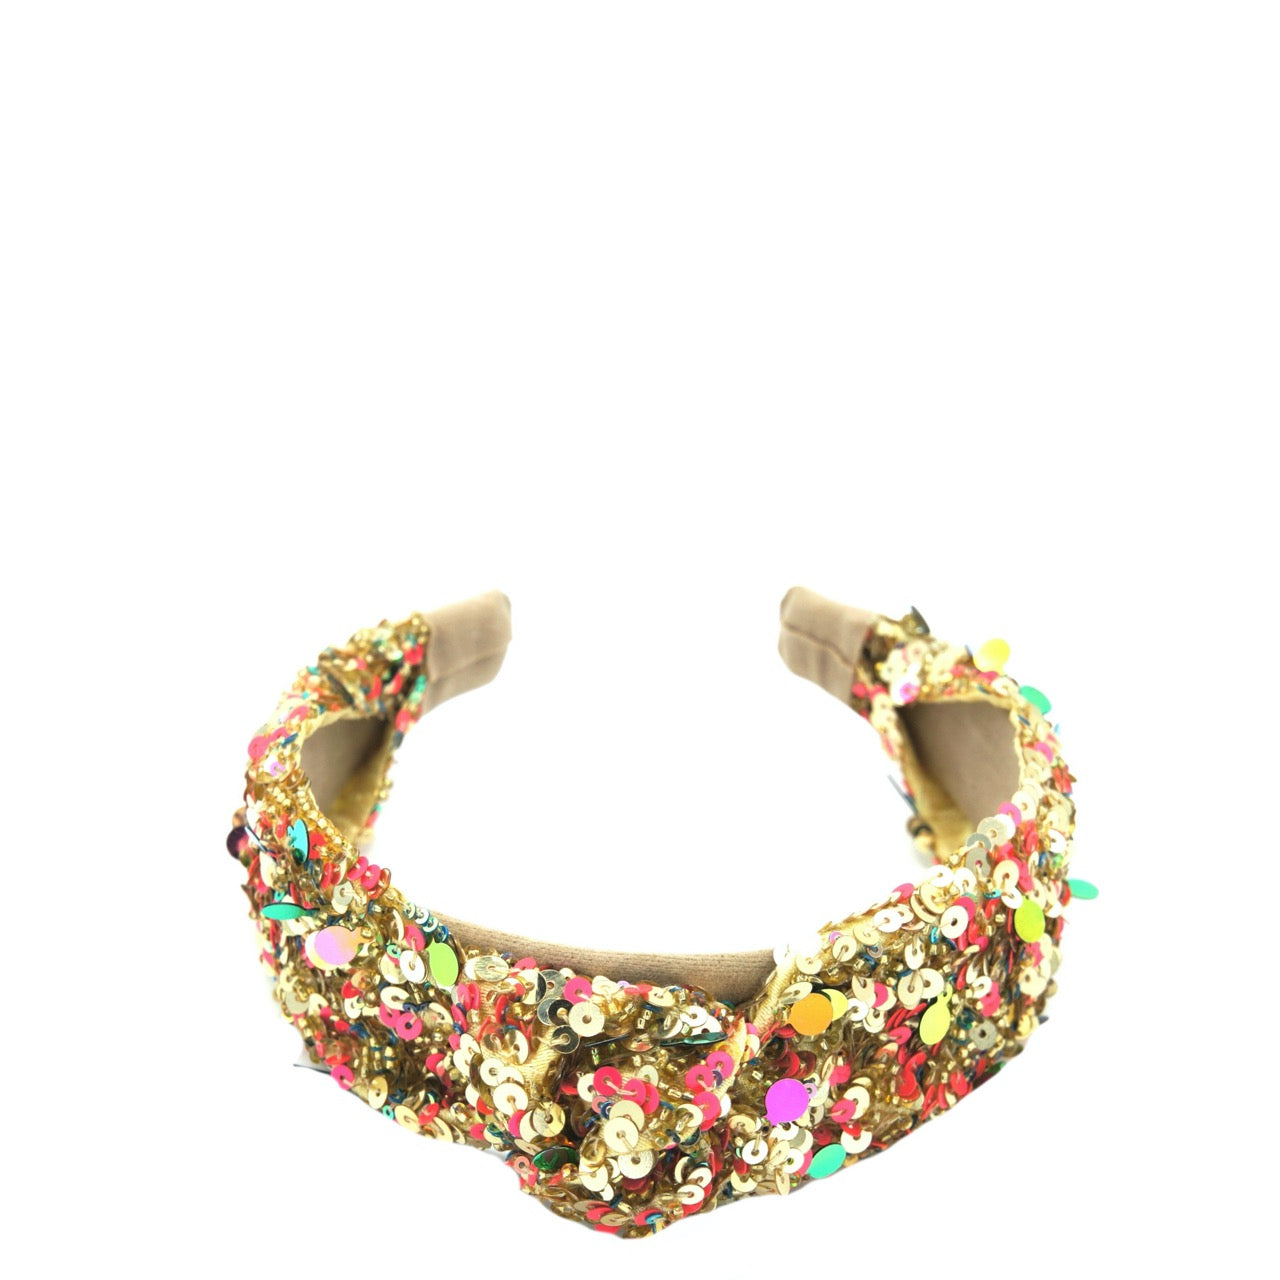 Gold Donut Knotted Headband